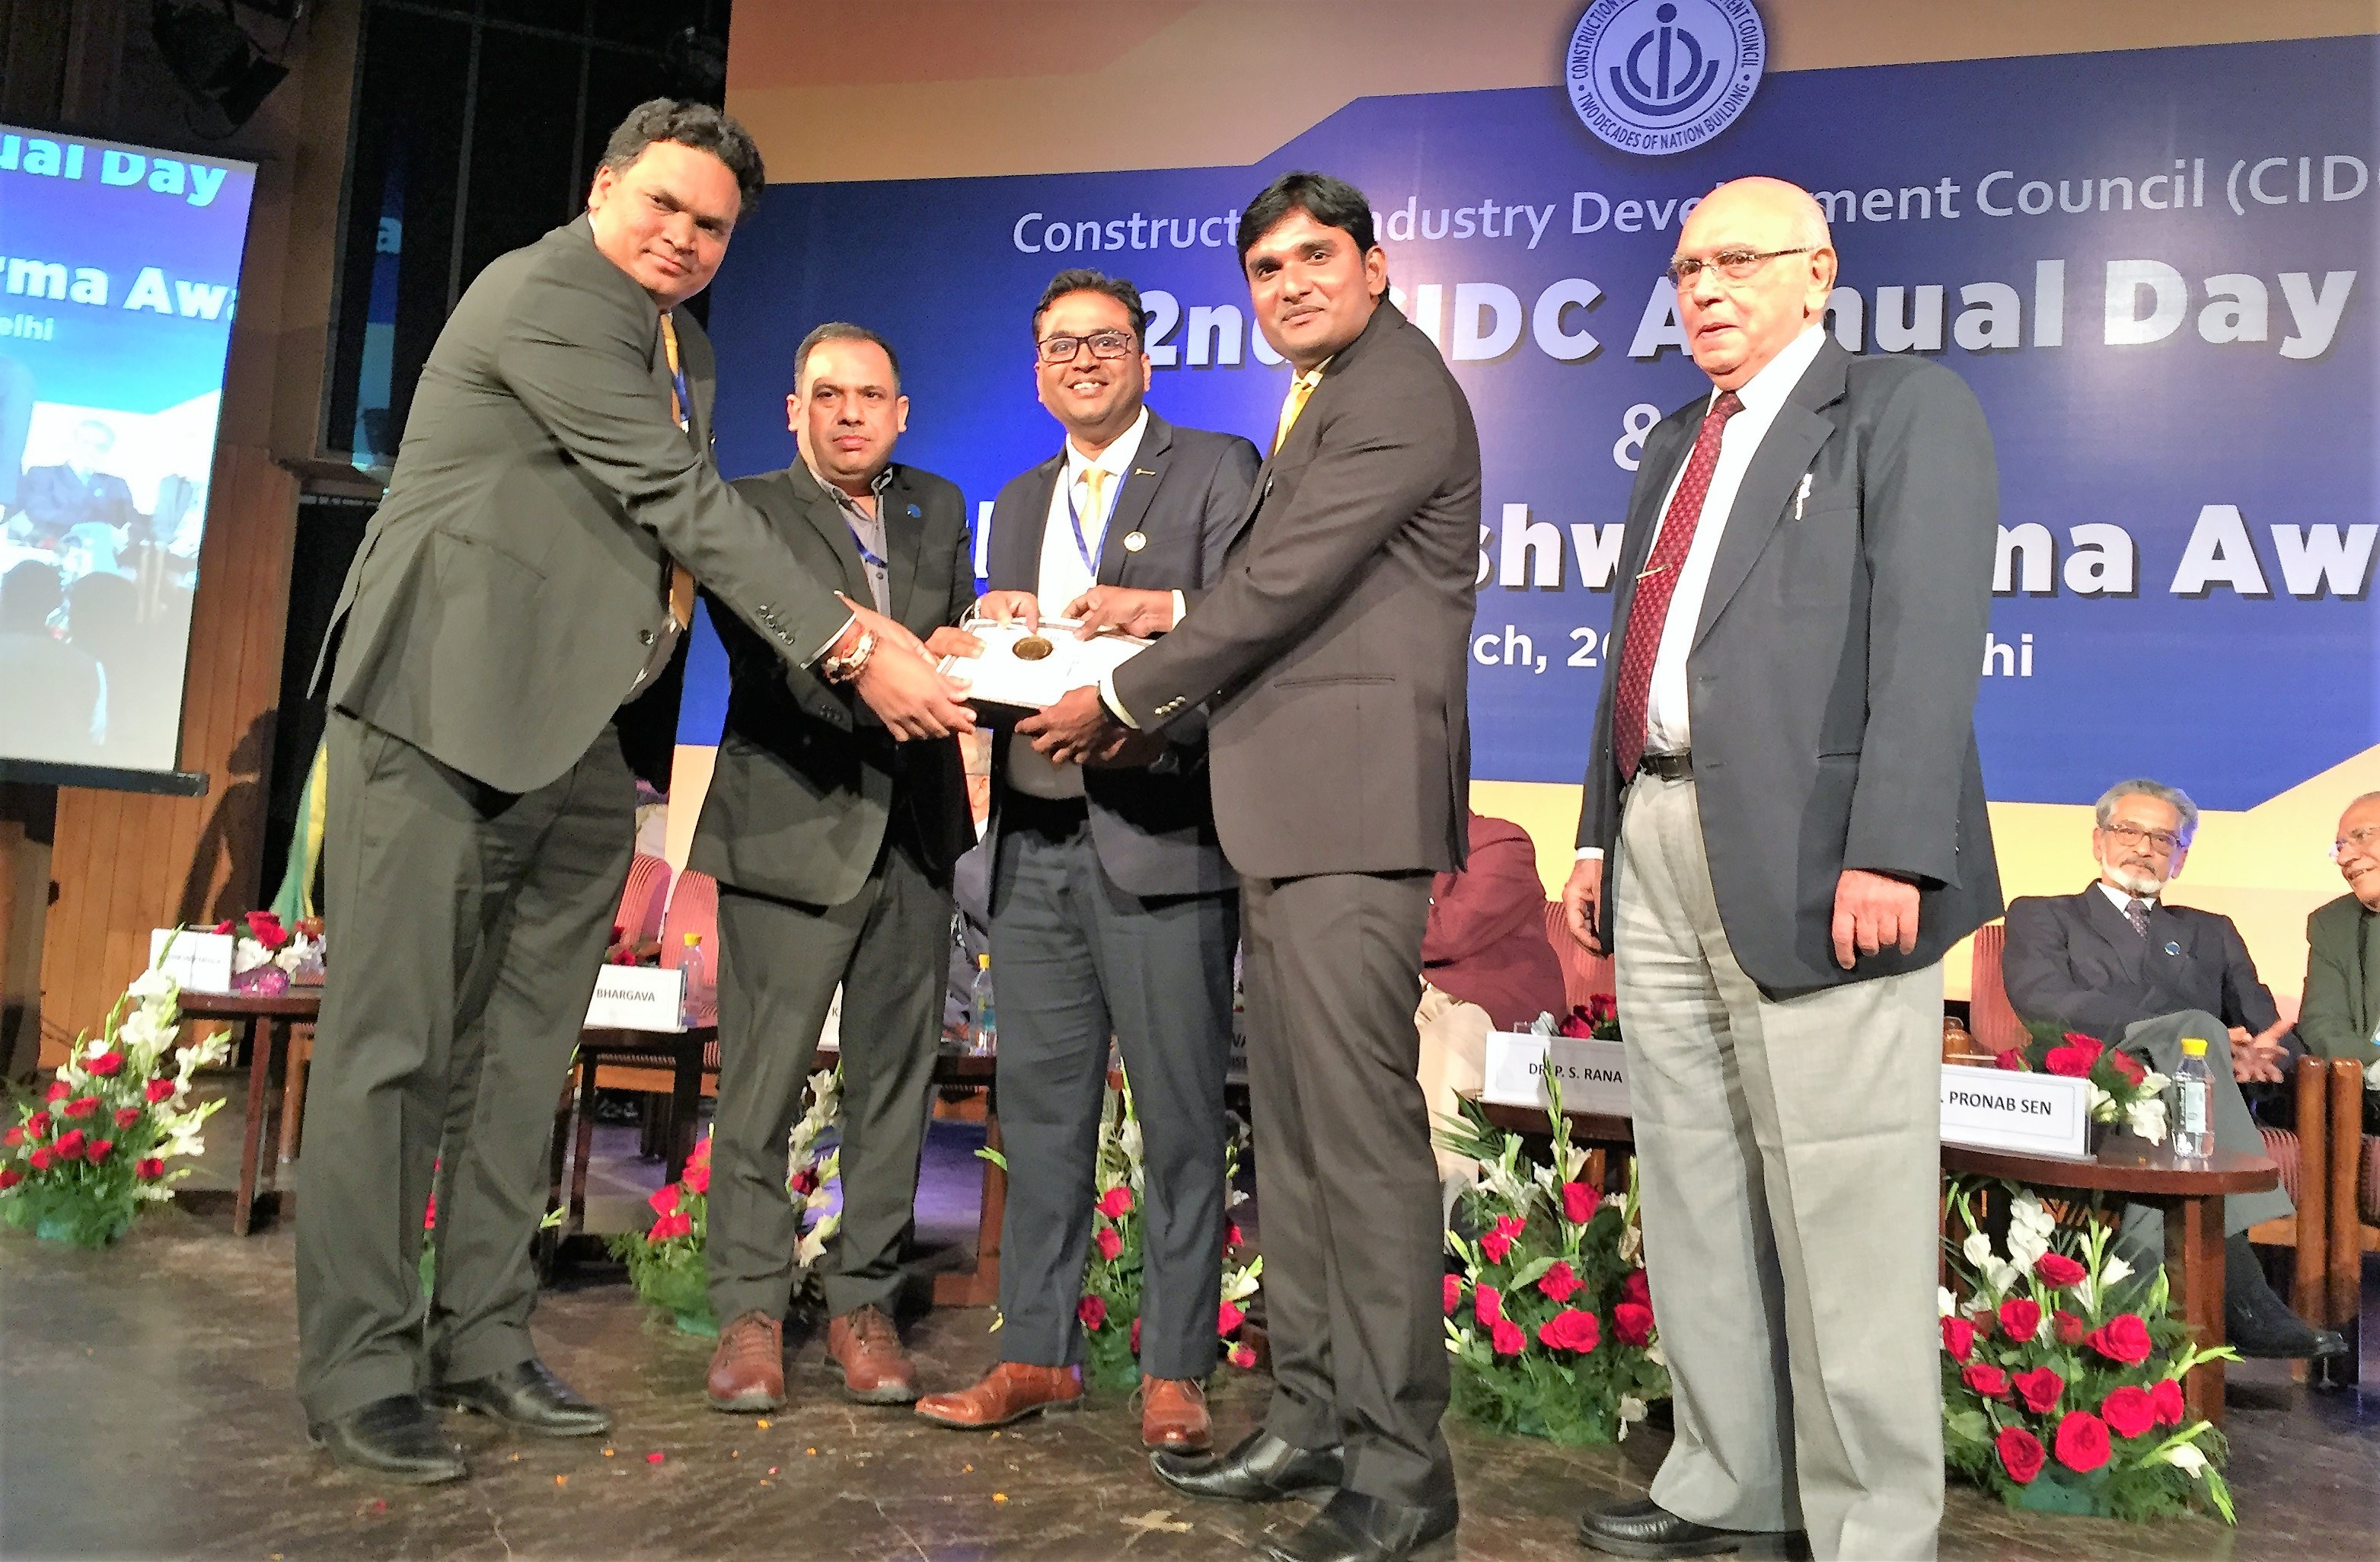 CIDC-Viswakarma-Award-for-Best-practices-in-Health-safety-and-Environment-at-LT-Delhi-Site-07th-March-2018.jpg#asset:681